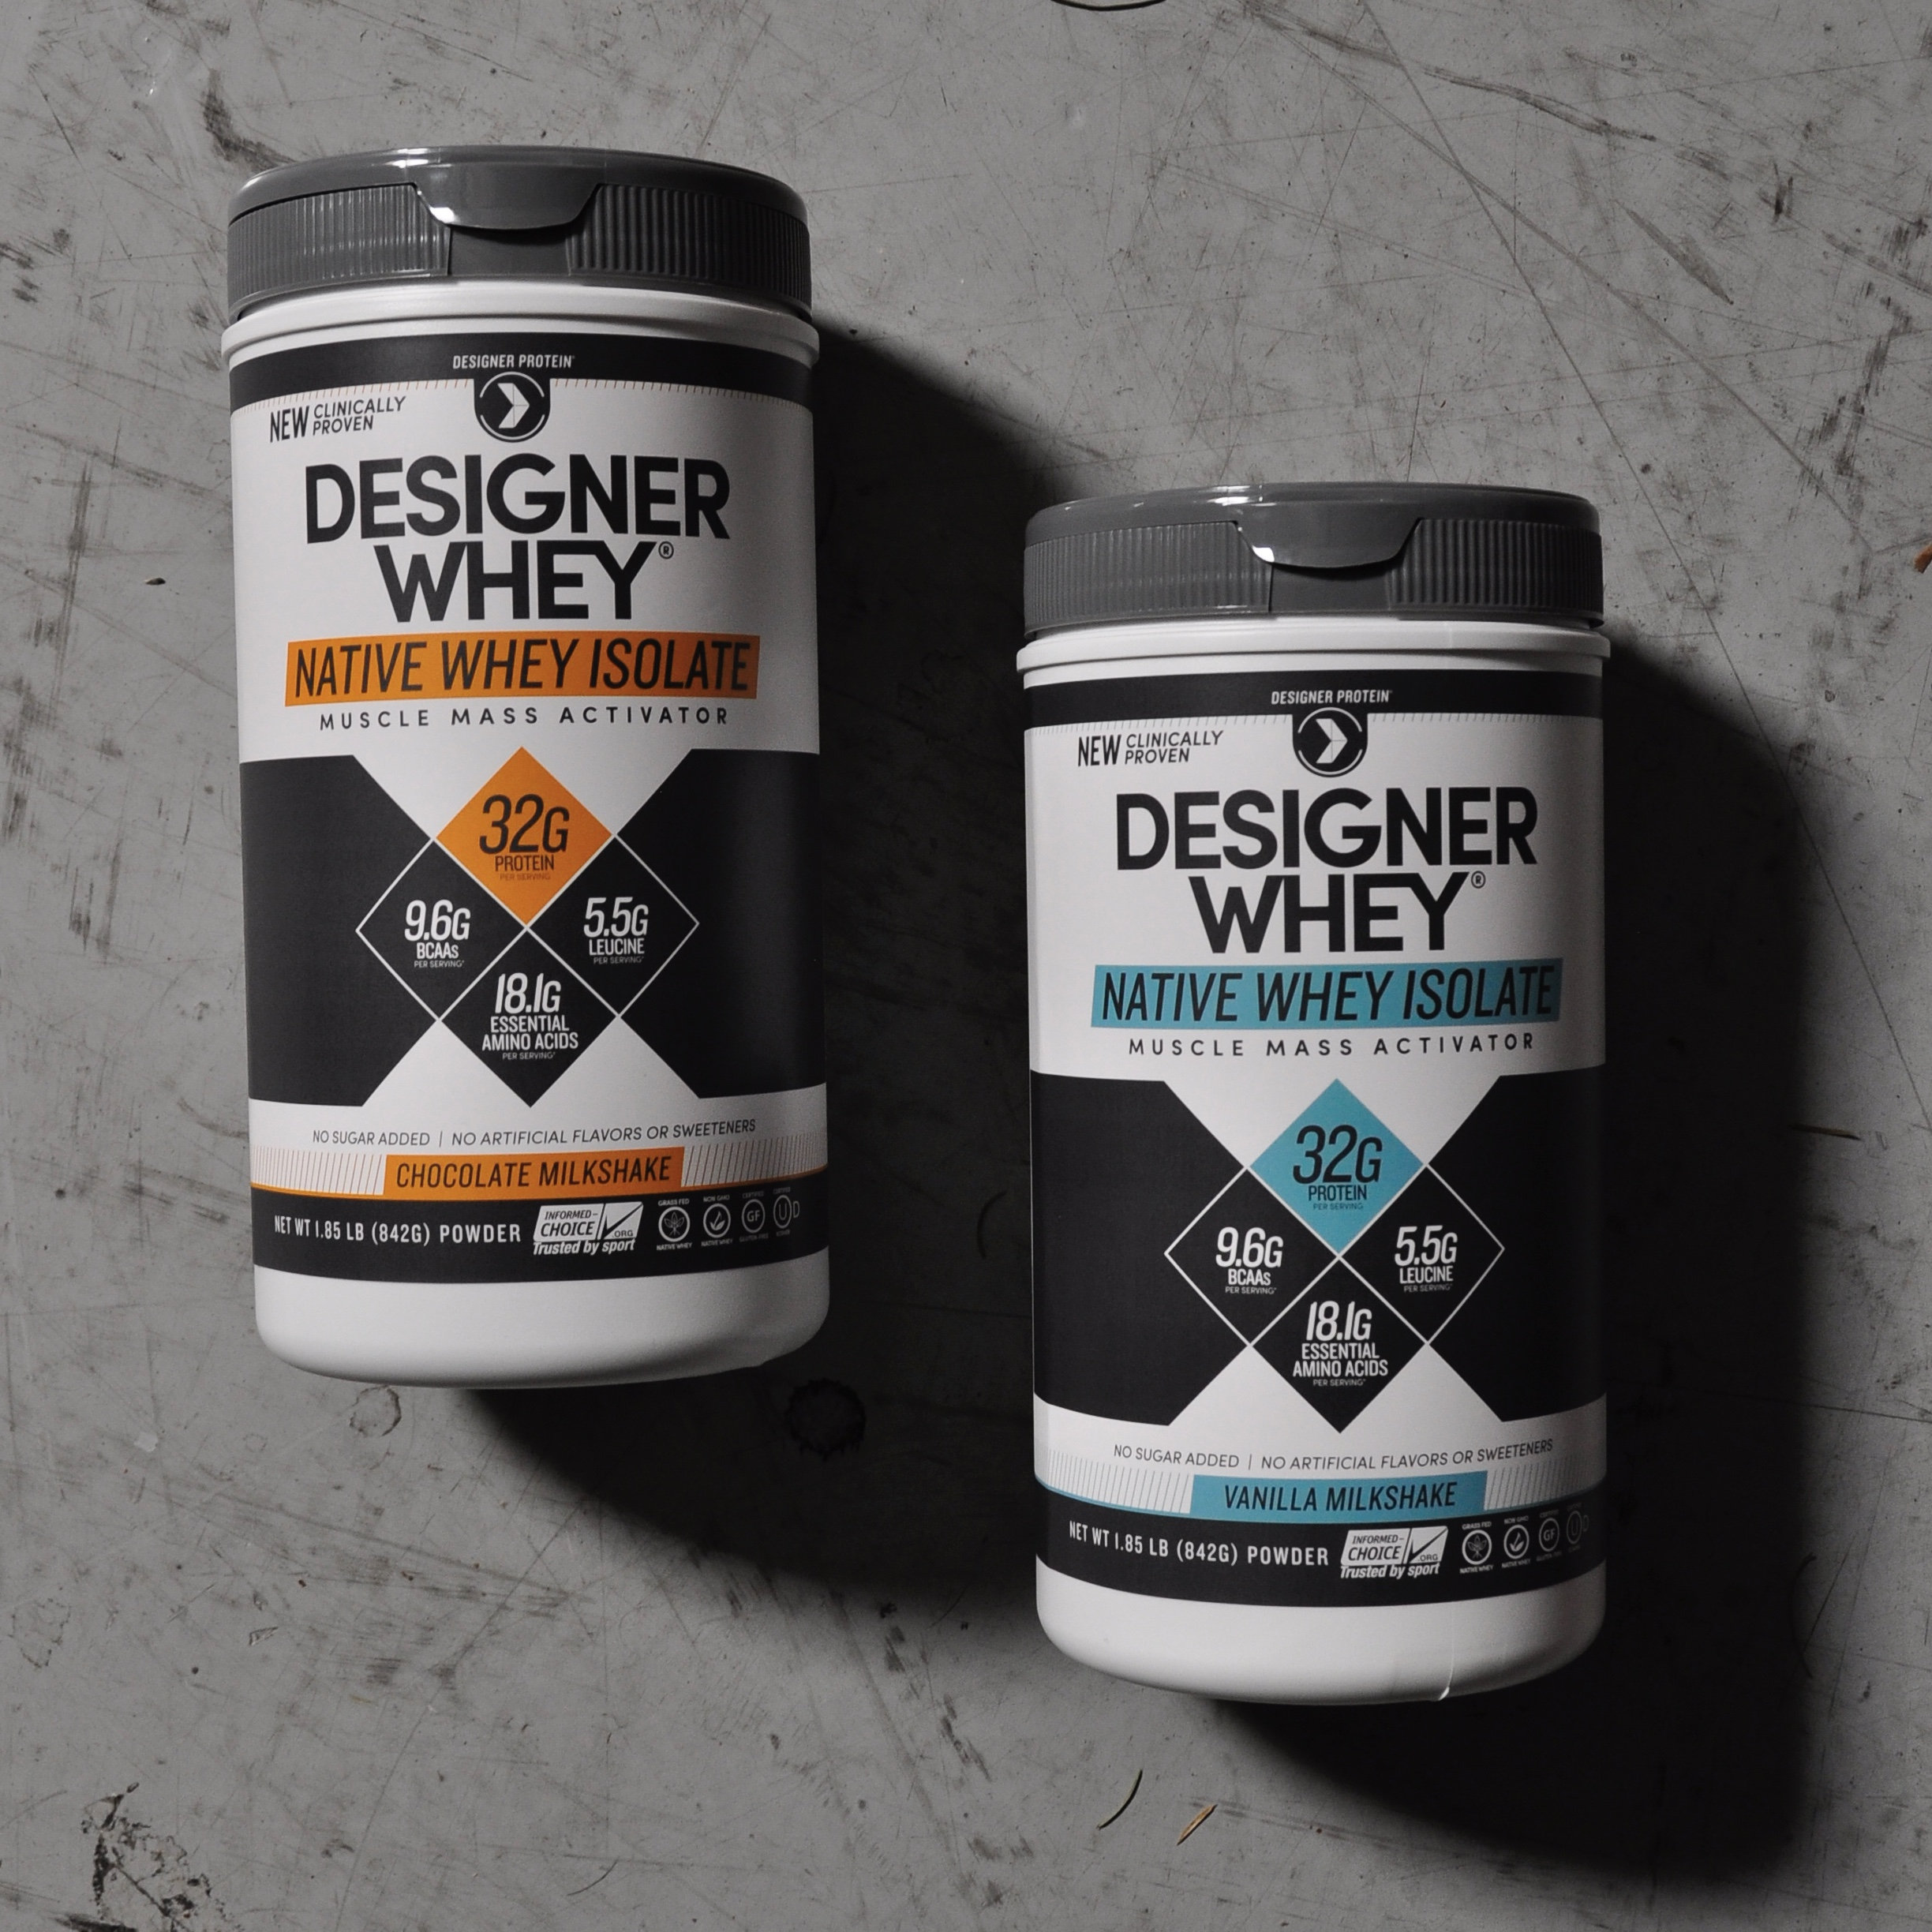 Designer Whey Native Whey Isolate -collaborated on overall label design, developed graphs on back panel.